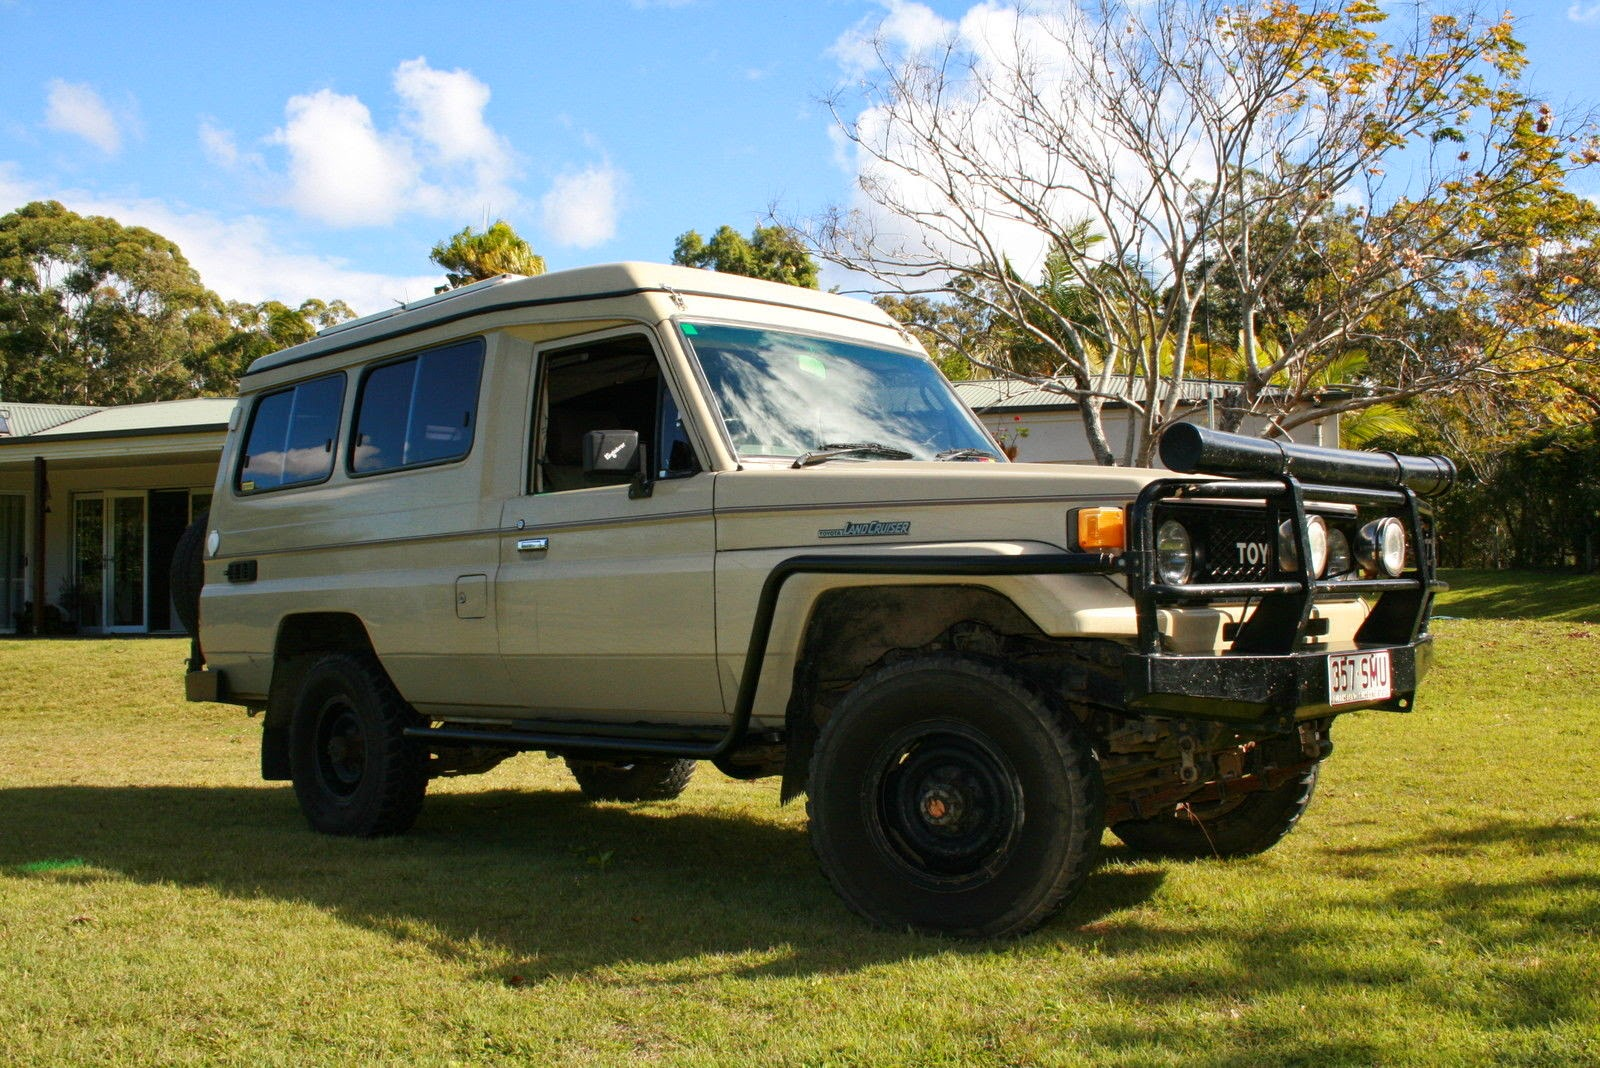 Used Rvs Toyota Landcruiser Trakka Pop Top Off Road